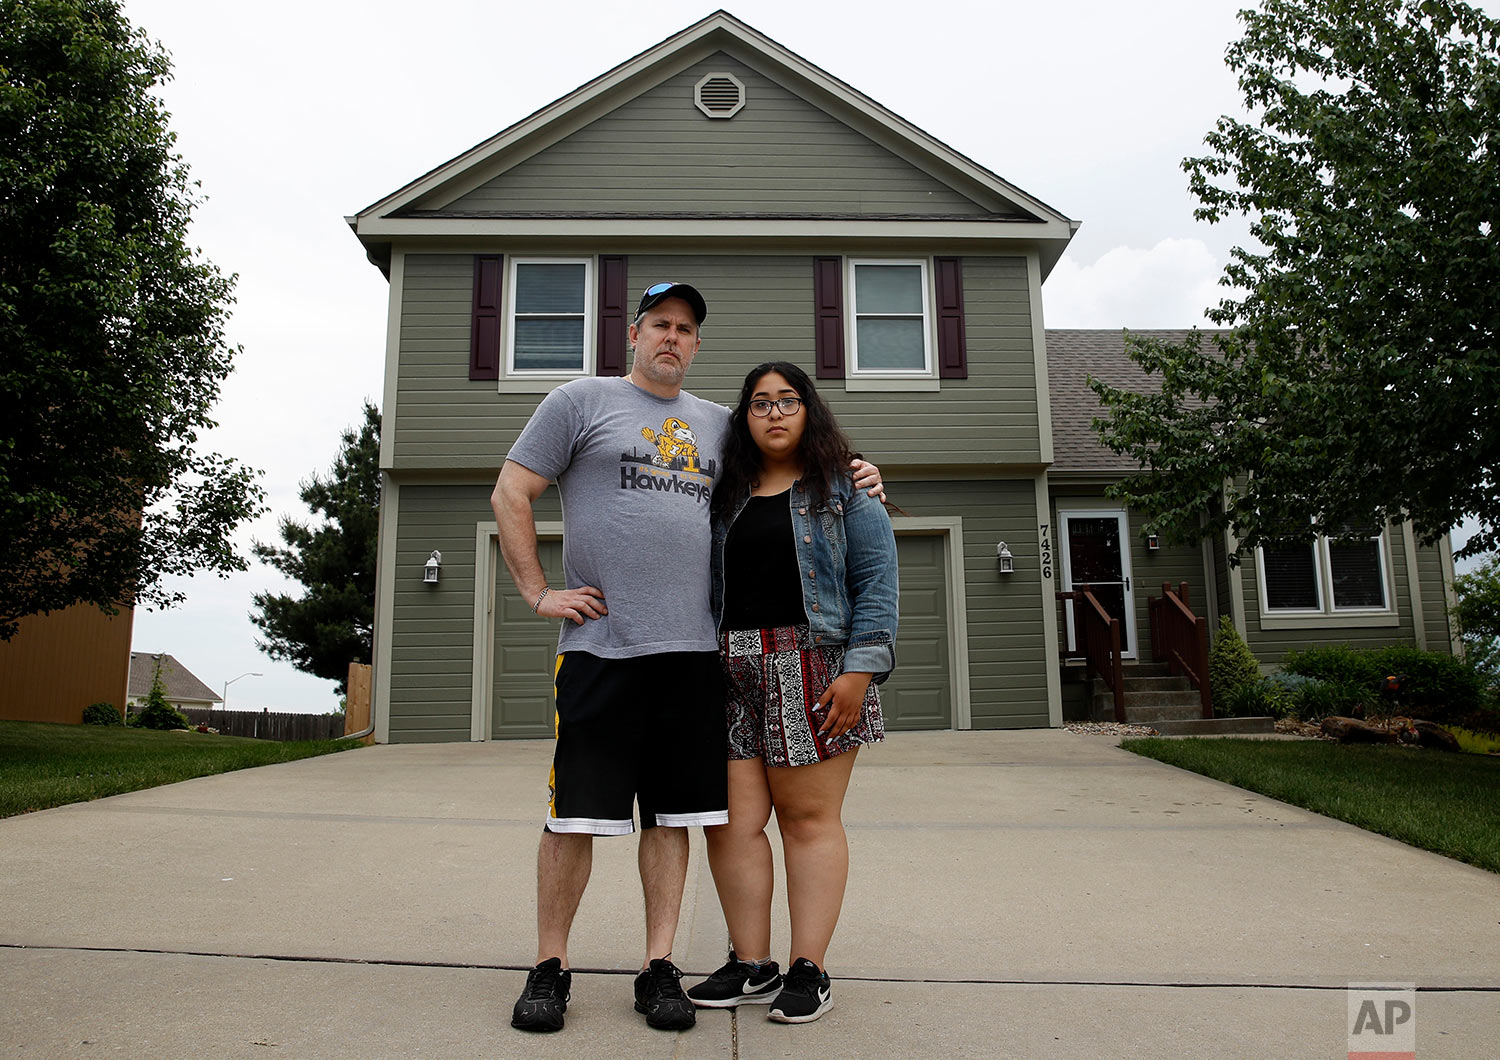 Jennifer Tadeo-Uscanga, 17, and her stepdad Steve Stegall stand outside their Kansas City, Mo. home they shared with wife and mother Letty Stegall. (AP Photo/Charlie Riedel)